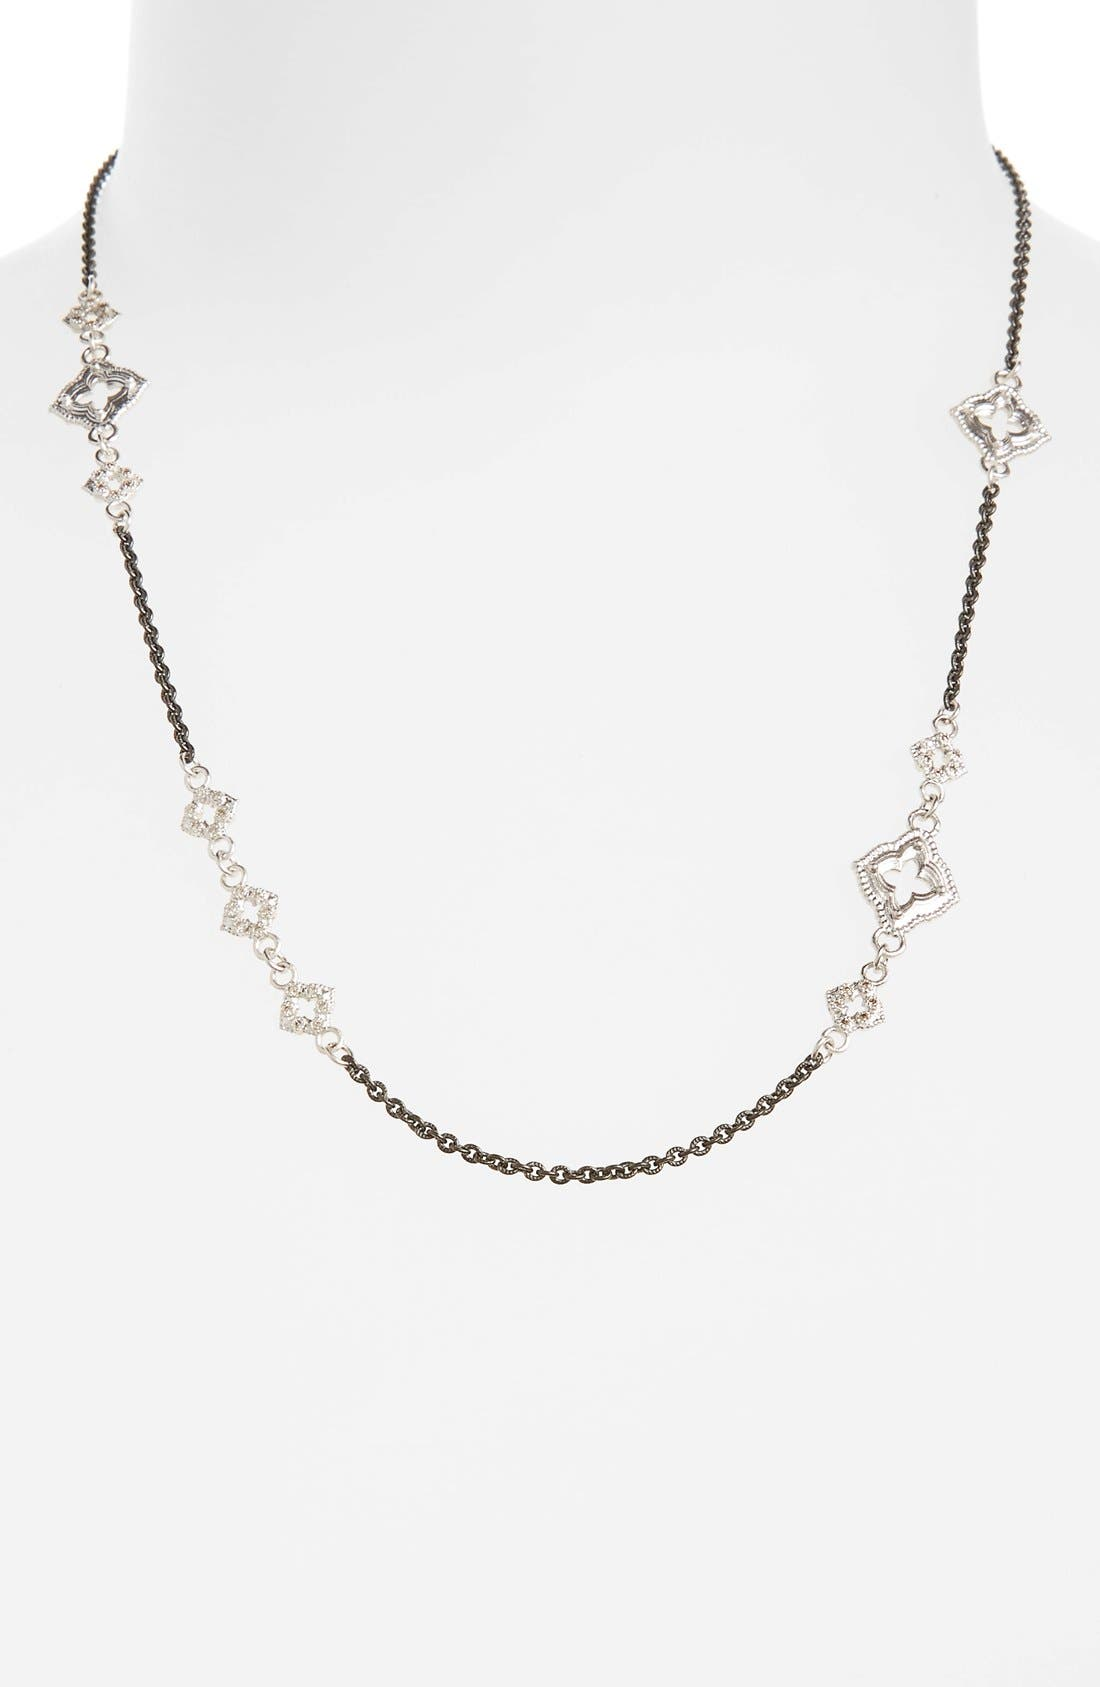 New World Chain Scroll Station Necklace,                         Main,                         color, Champagne/ Black